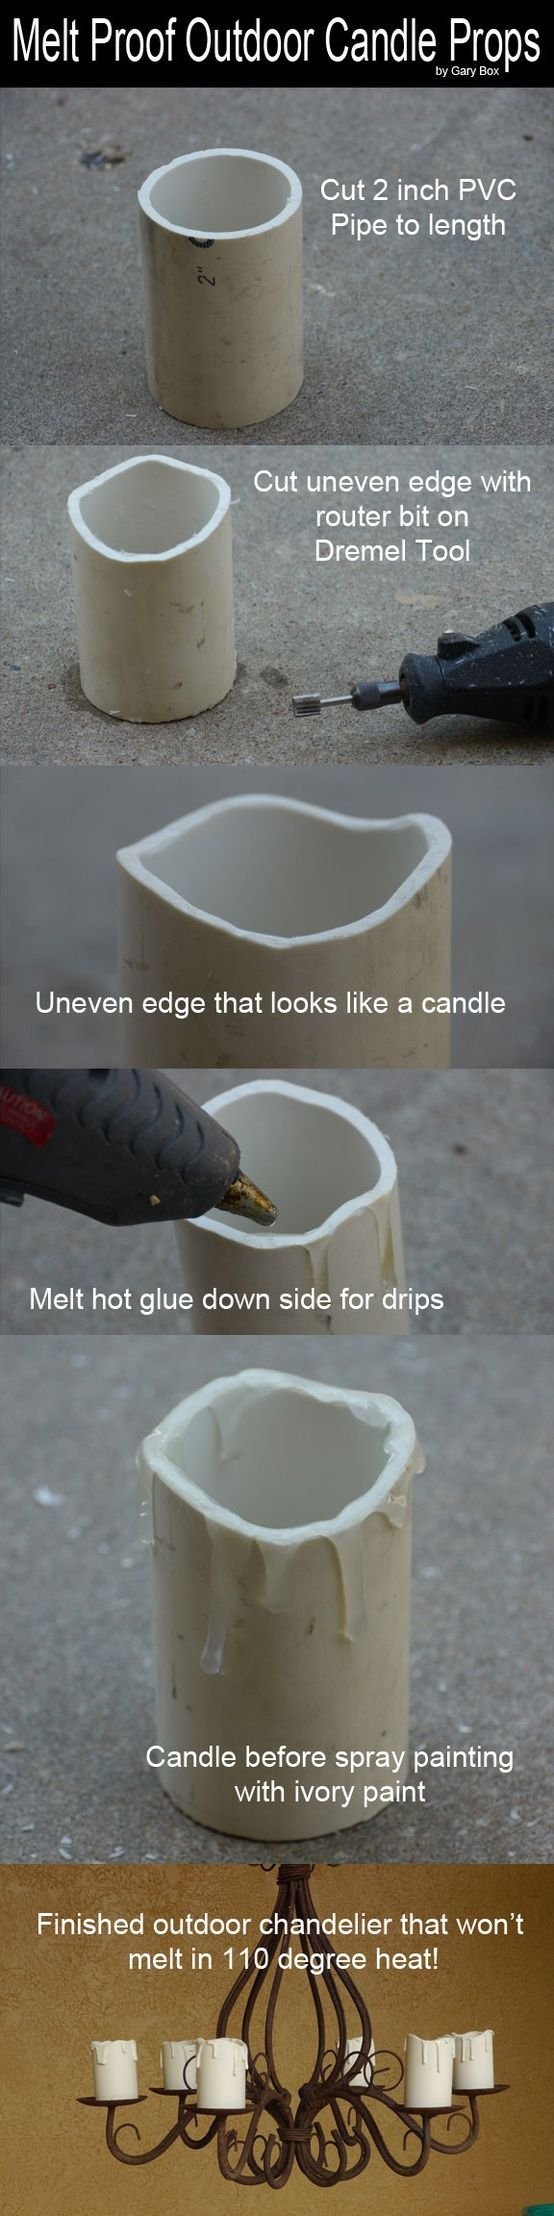 DIY Melt Proof Candle Chandelier - now this is just SO neat! PVC?? who would have ever guessed by just looking at the finished project?!